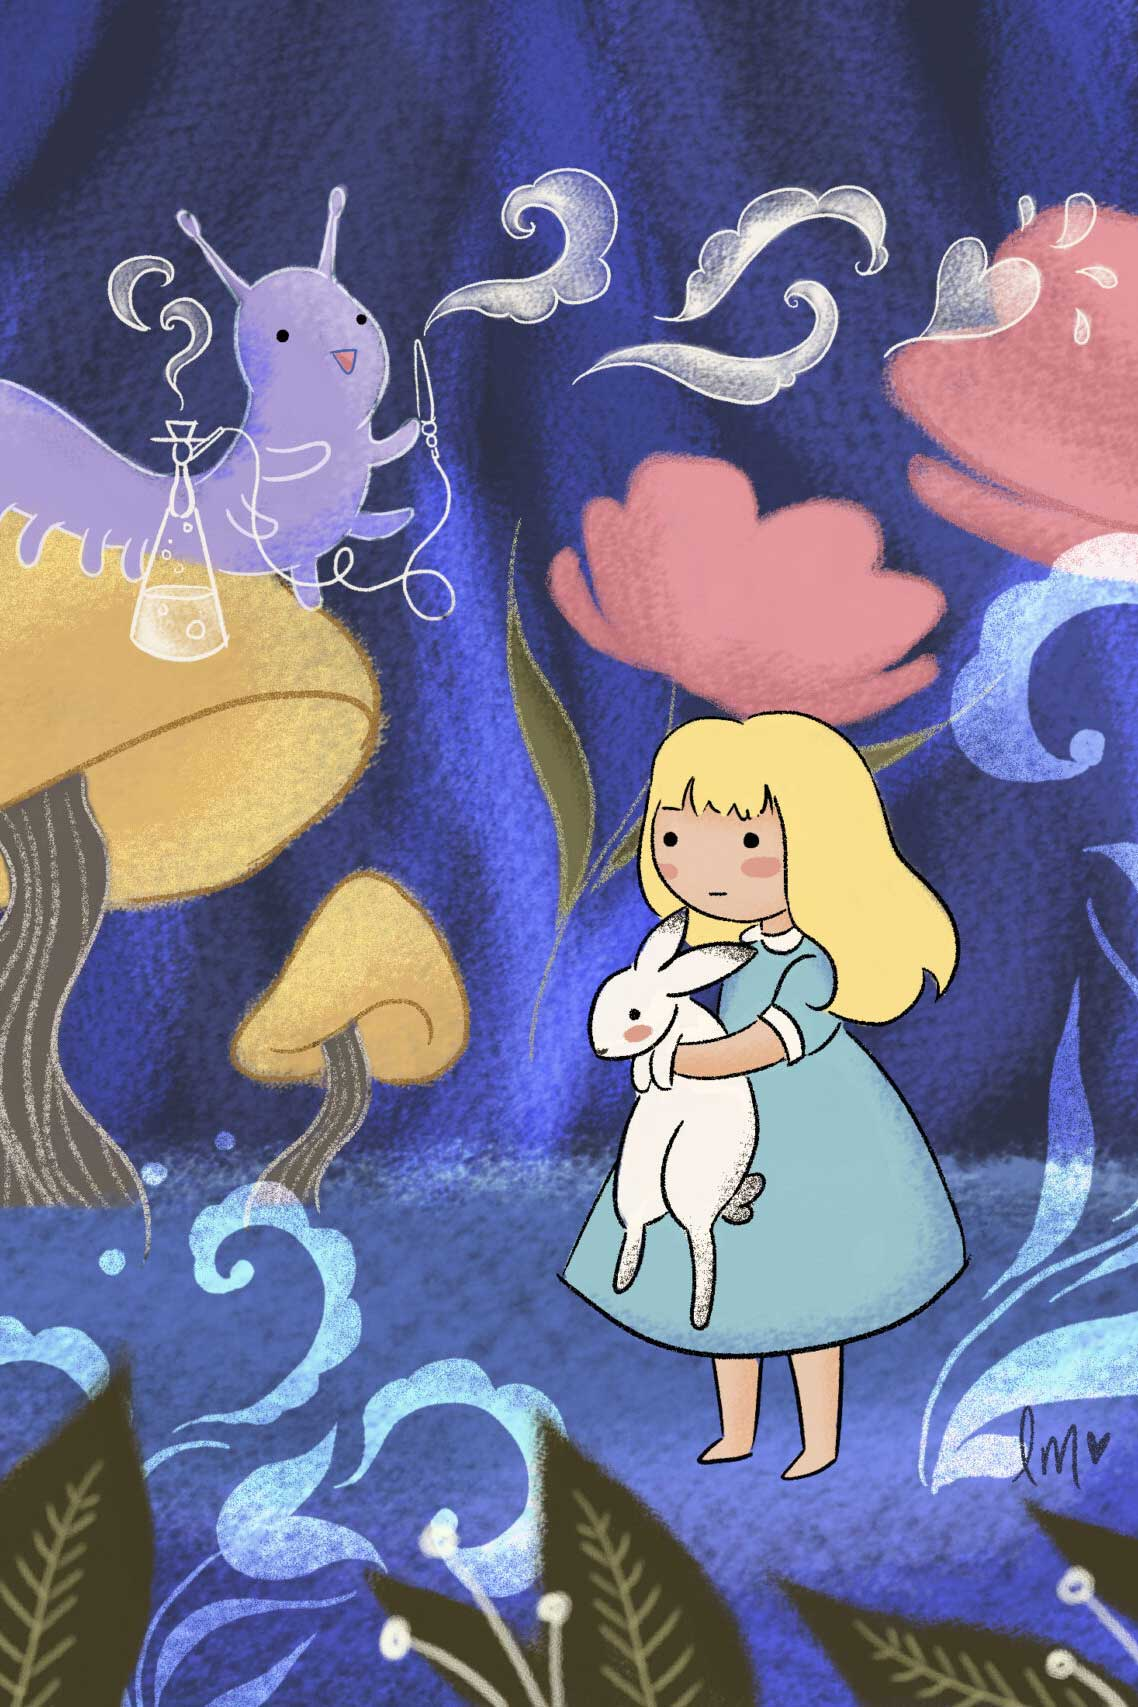 Alice in Wonderland by Lauren Metzler. See more children's book illustrations at laurenmetzler.com